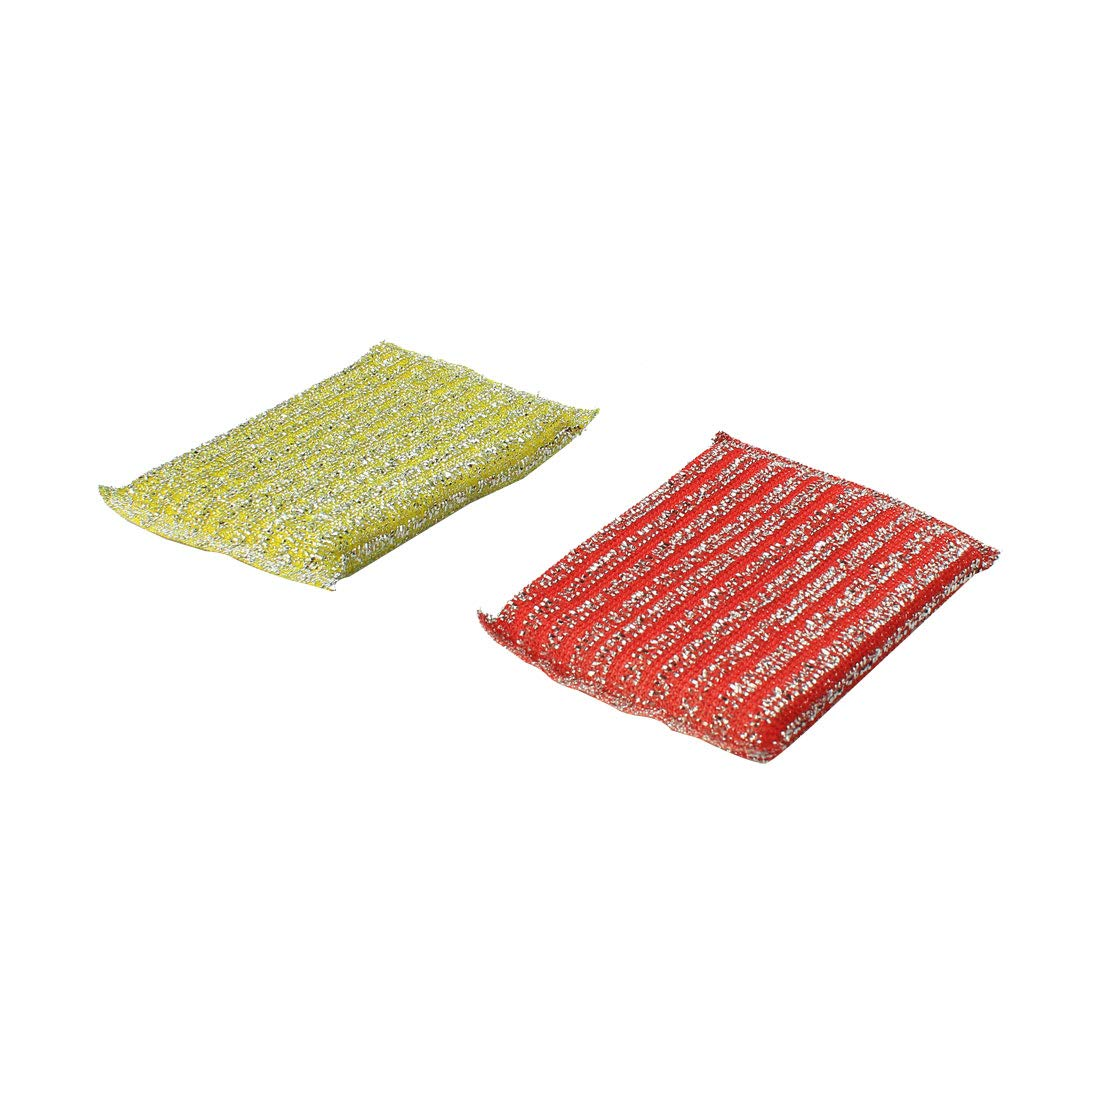 uxcell® Metallic Thread Scrub Sponge Pad Kitchen Dish Pot Pan Cleaner 2 Pcs Red Yellow US-SA-AJD-204303